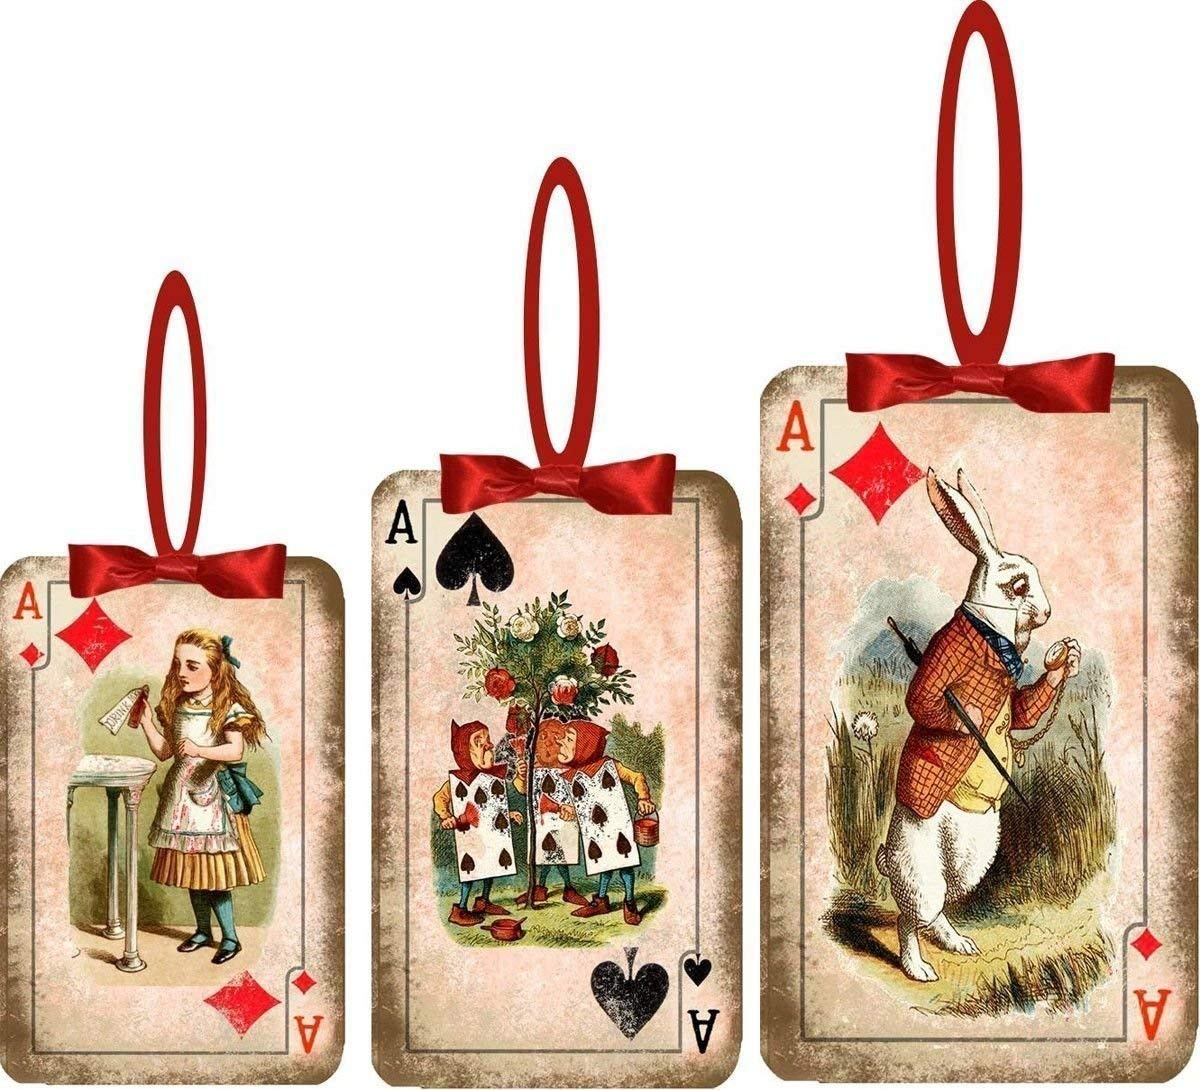 Alice in Wonderland 8 Christmas ornaments 4 sizes with red satin ribbons